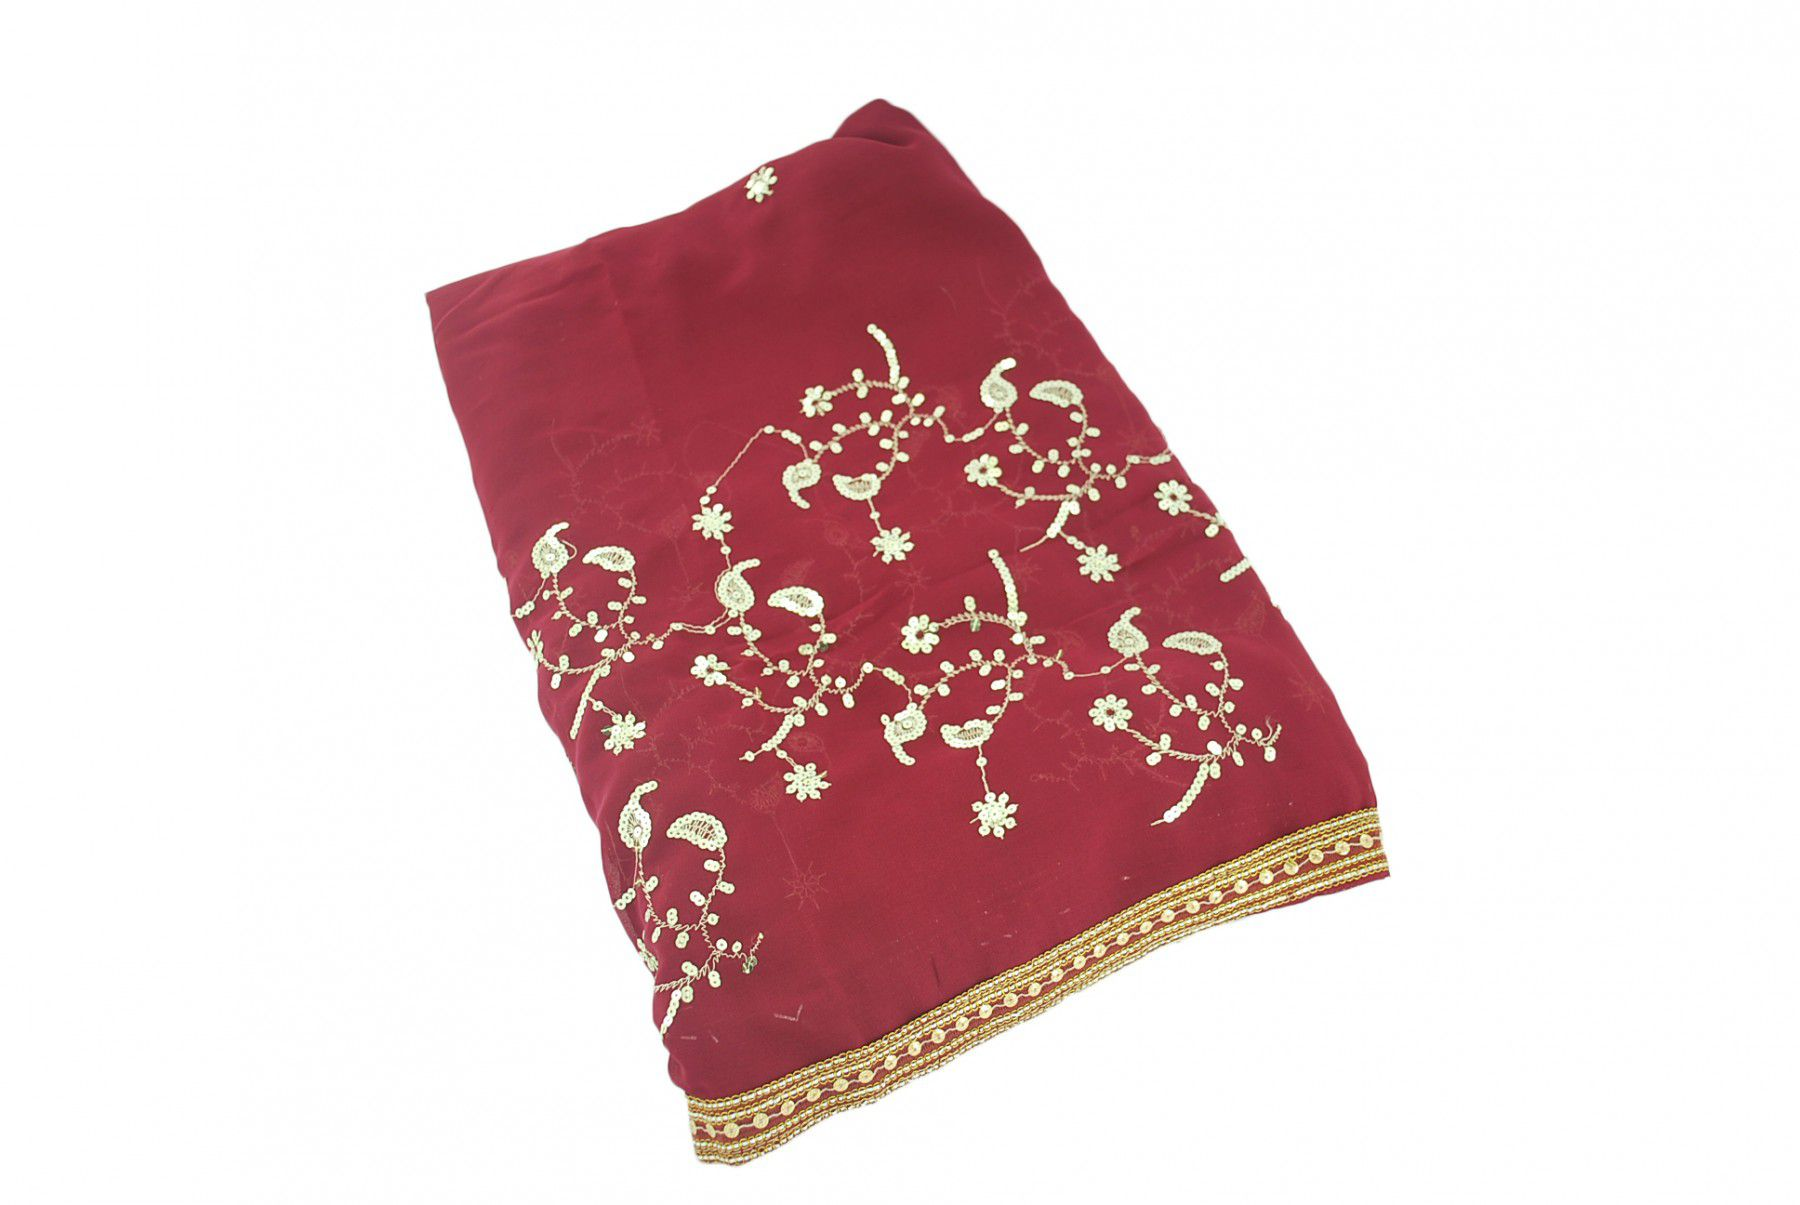 Saree Indiano Bordado Crepe Georgette 5 Metros